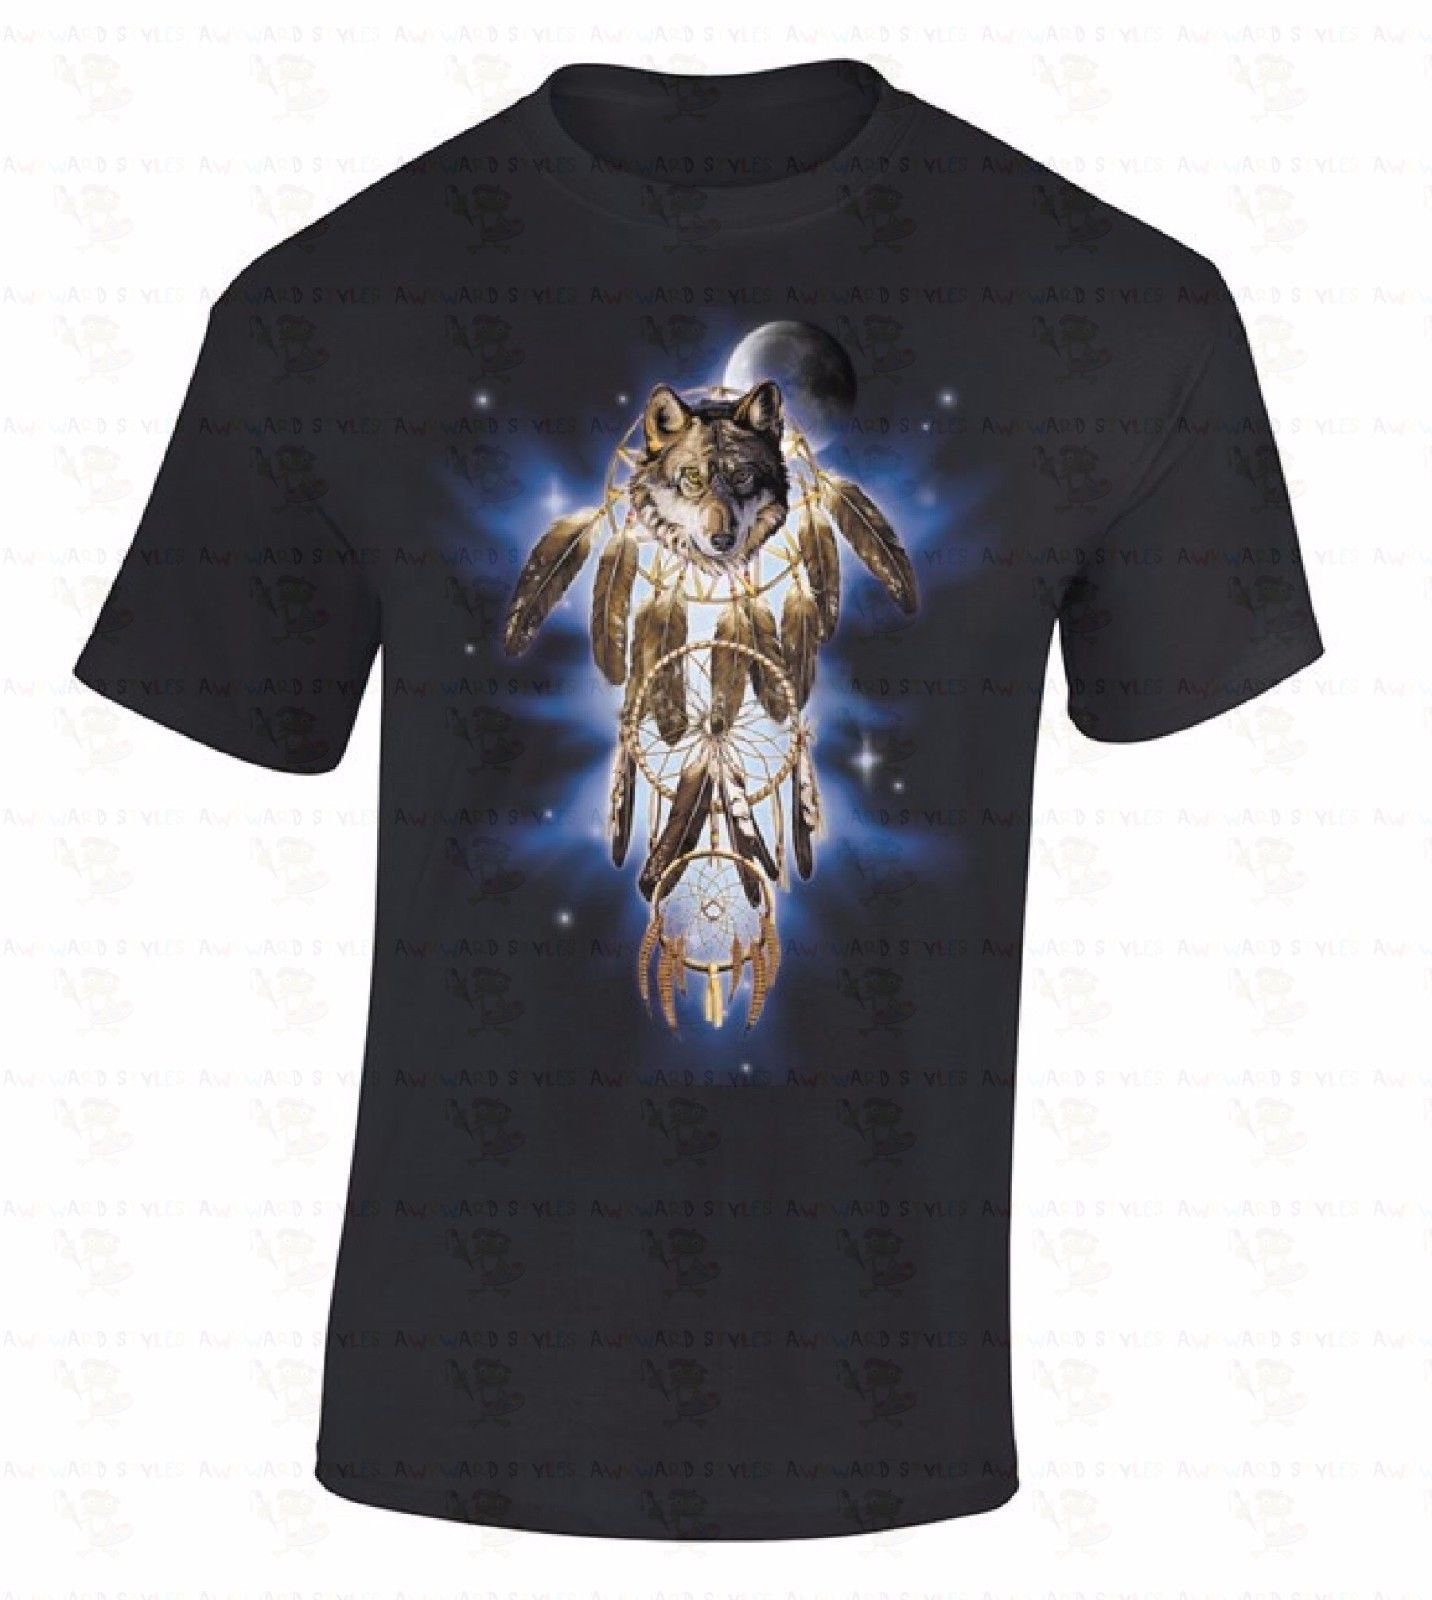 Black Cotton Hip Hop T Shirt Print Tee Shirts O-Neck Dream Catcher Wolf Space Native American Indian Spirit Feathers Men Shirts